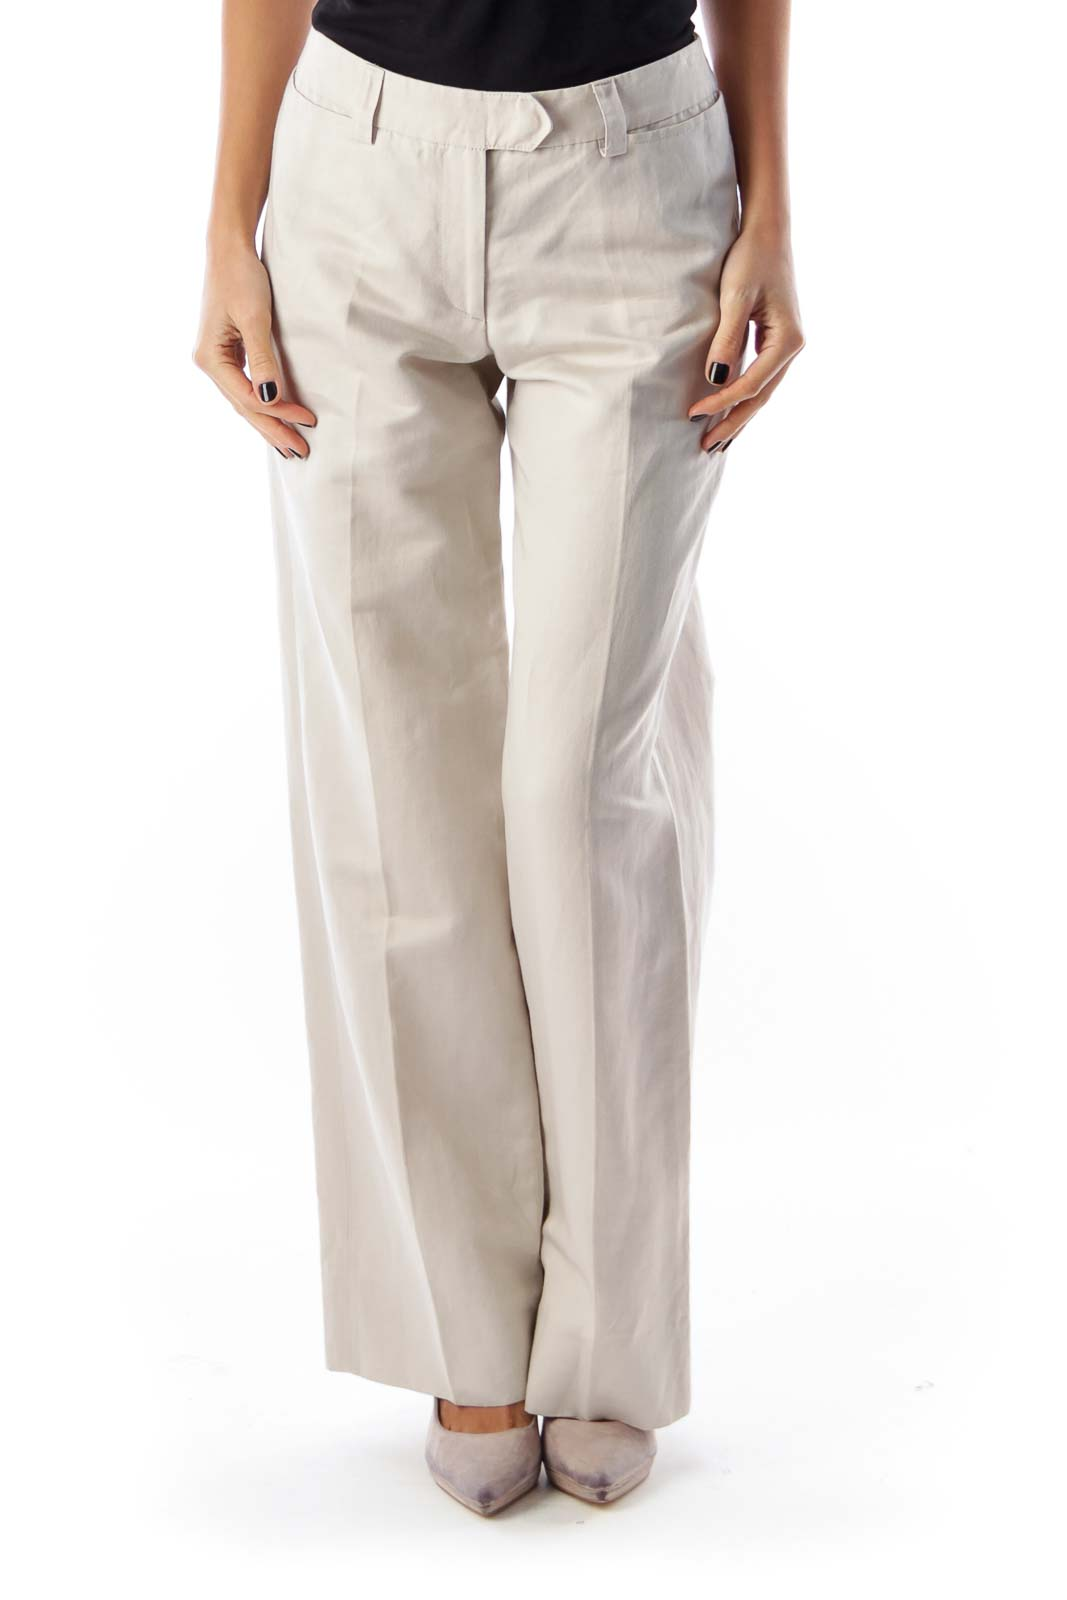 Beige Wide Legs Pants Front